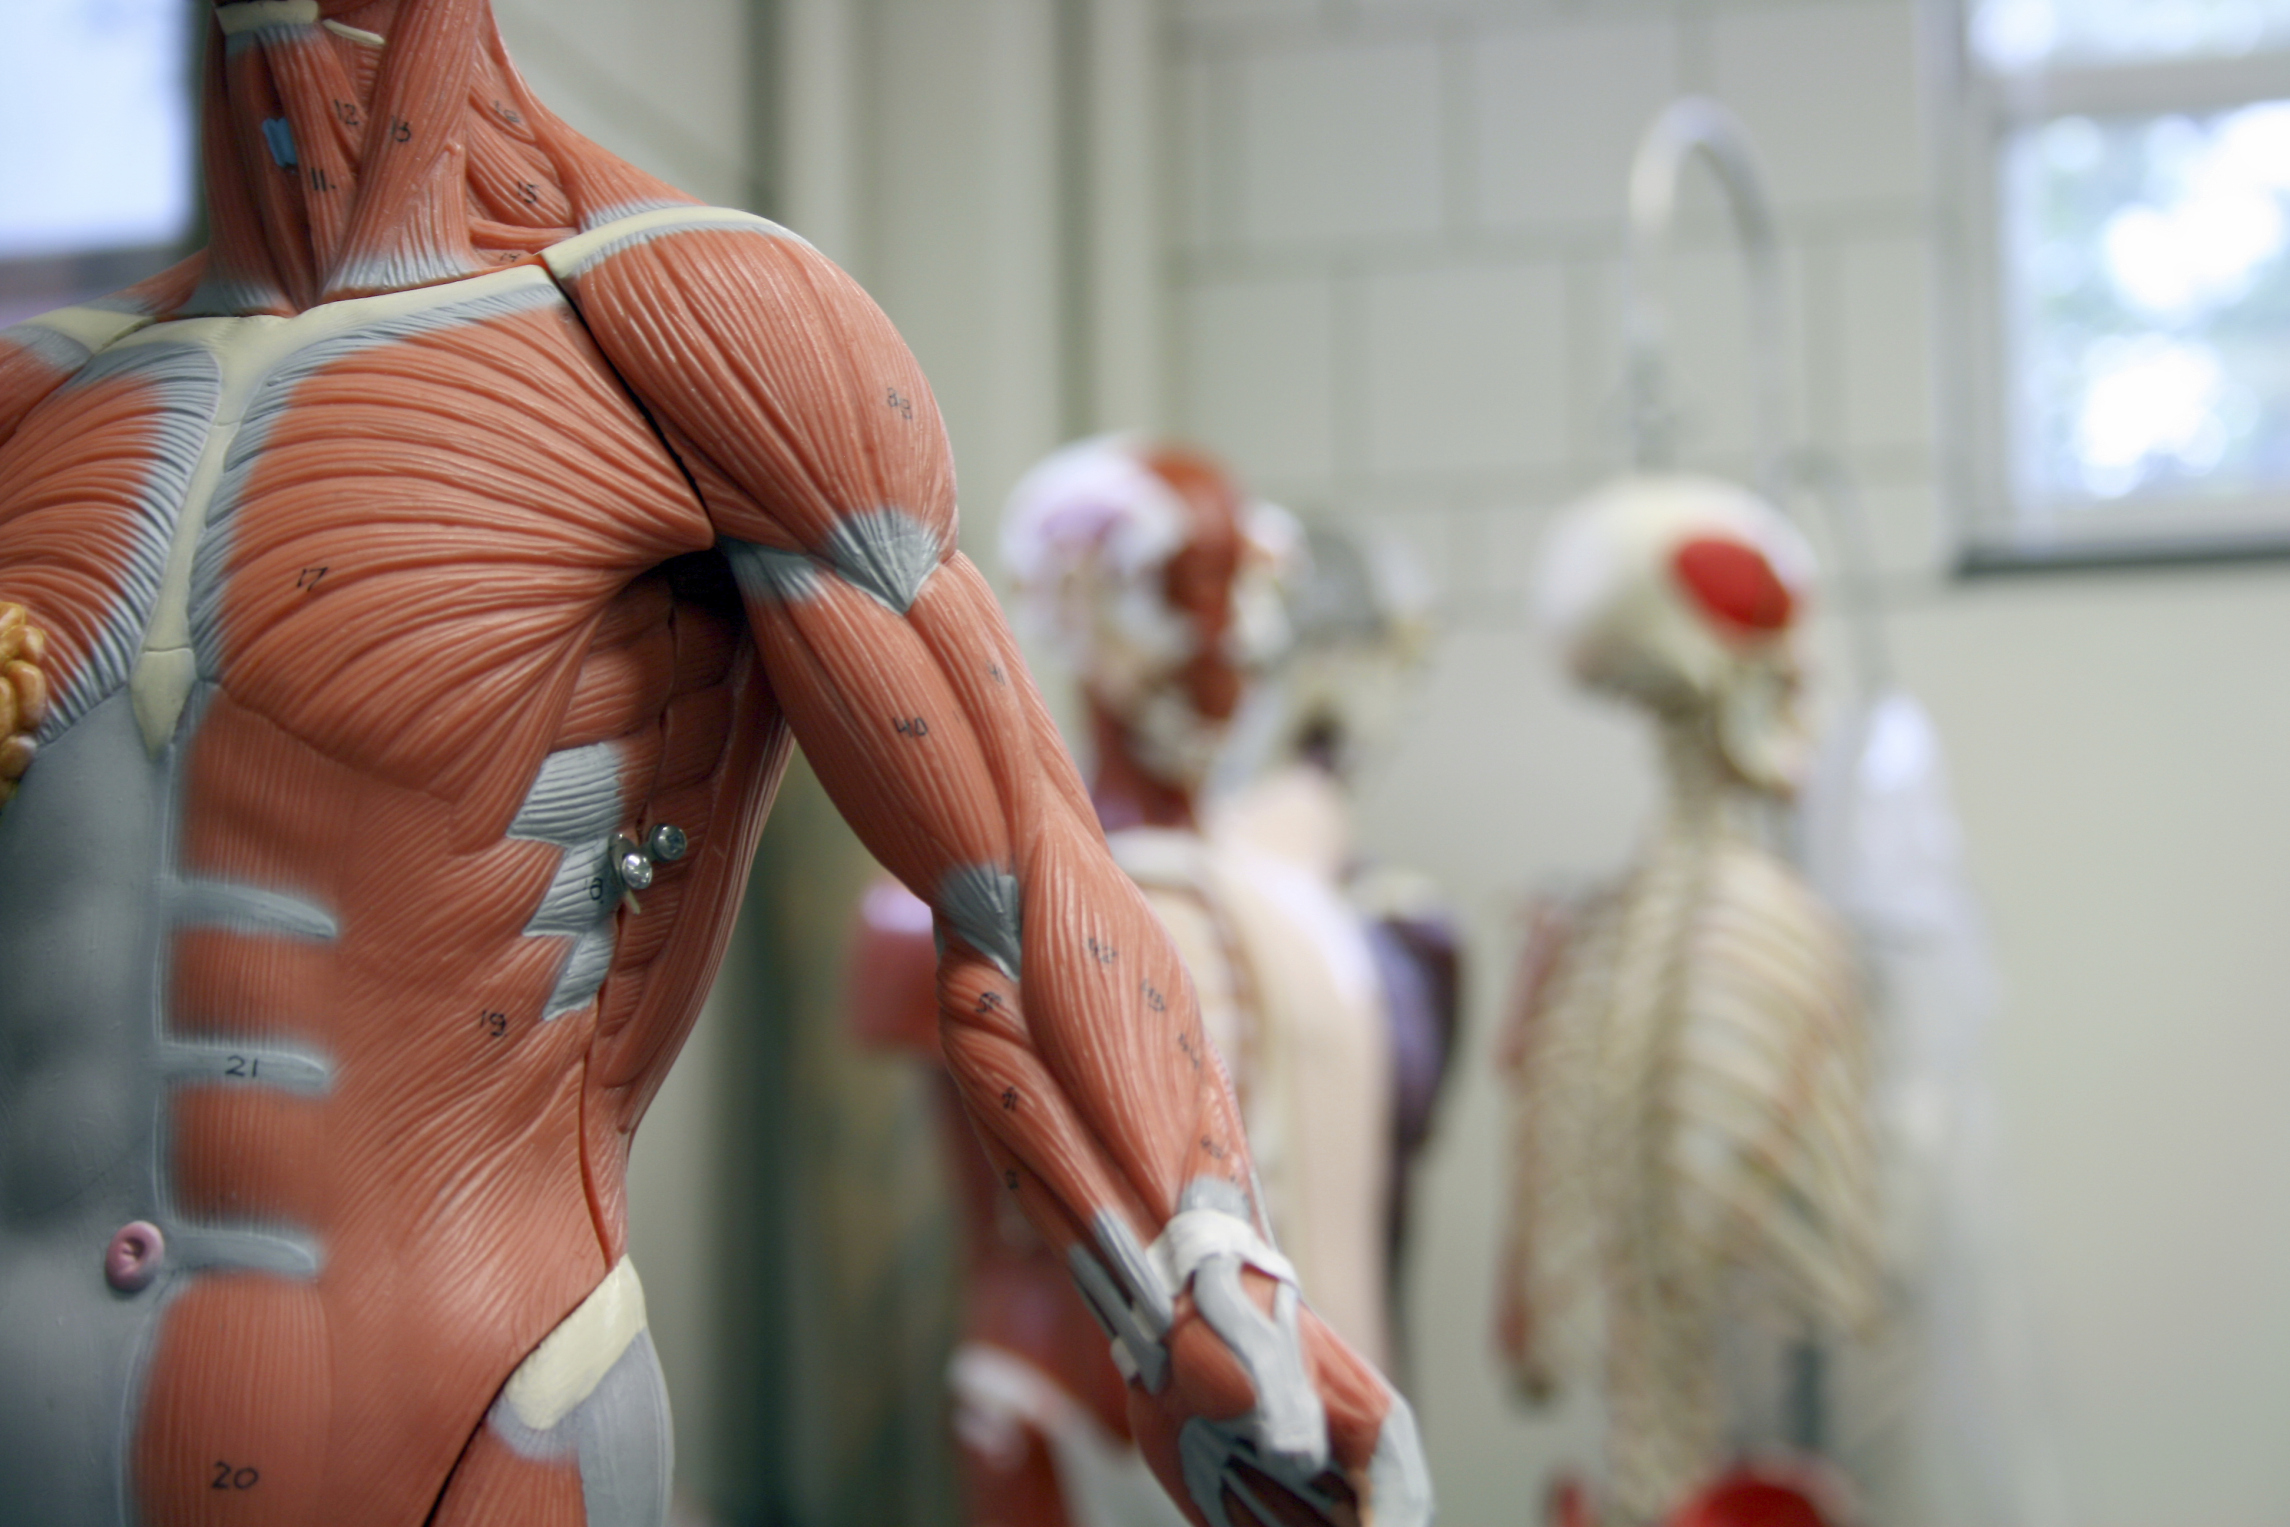 A Description of Tendons, Ligaments and Muscles | LIVESTRONG.COM